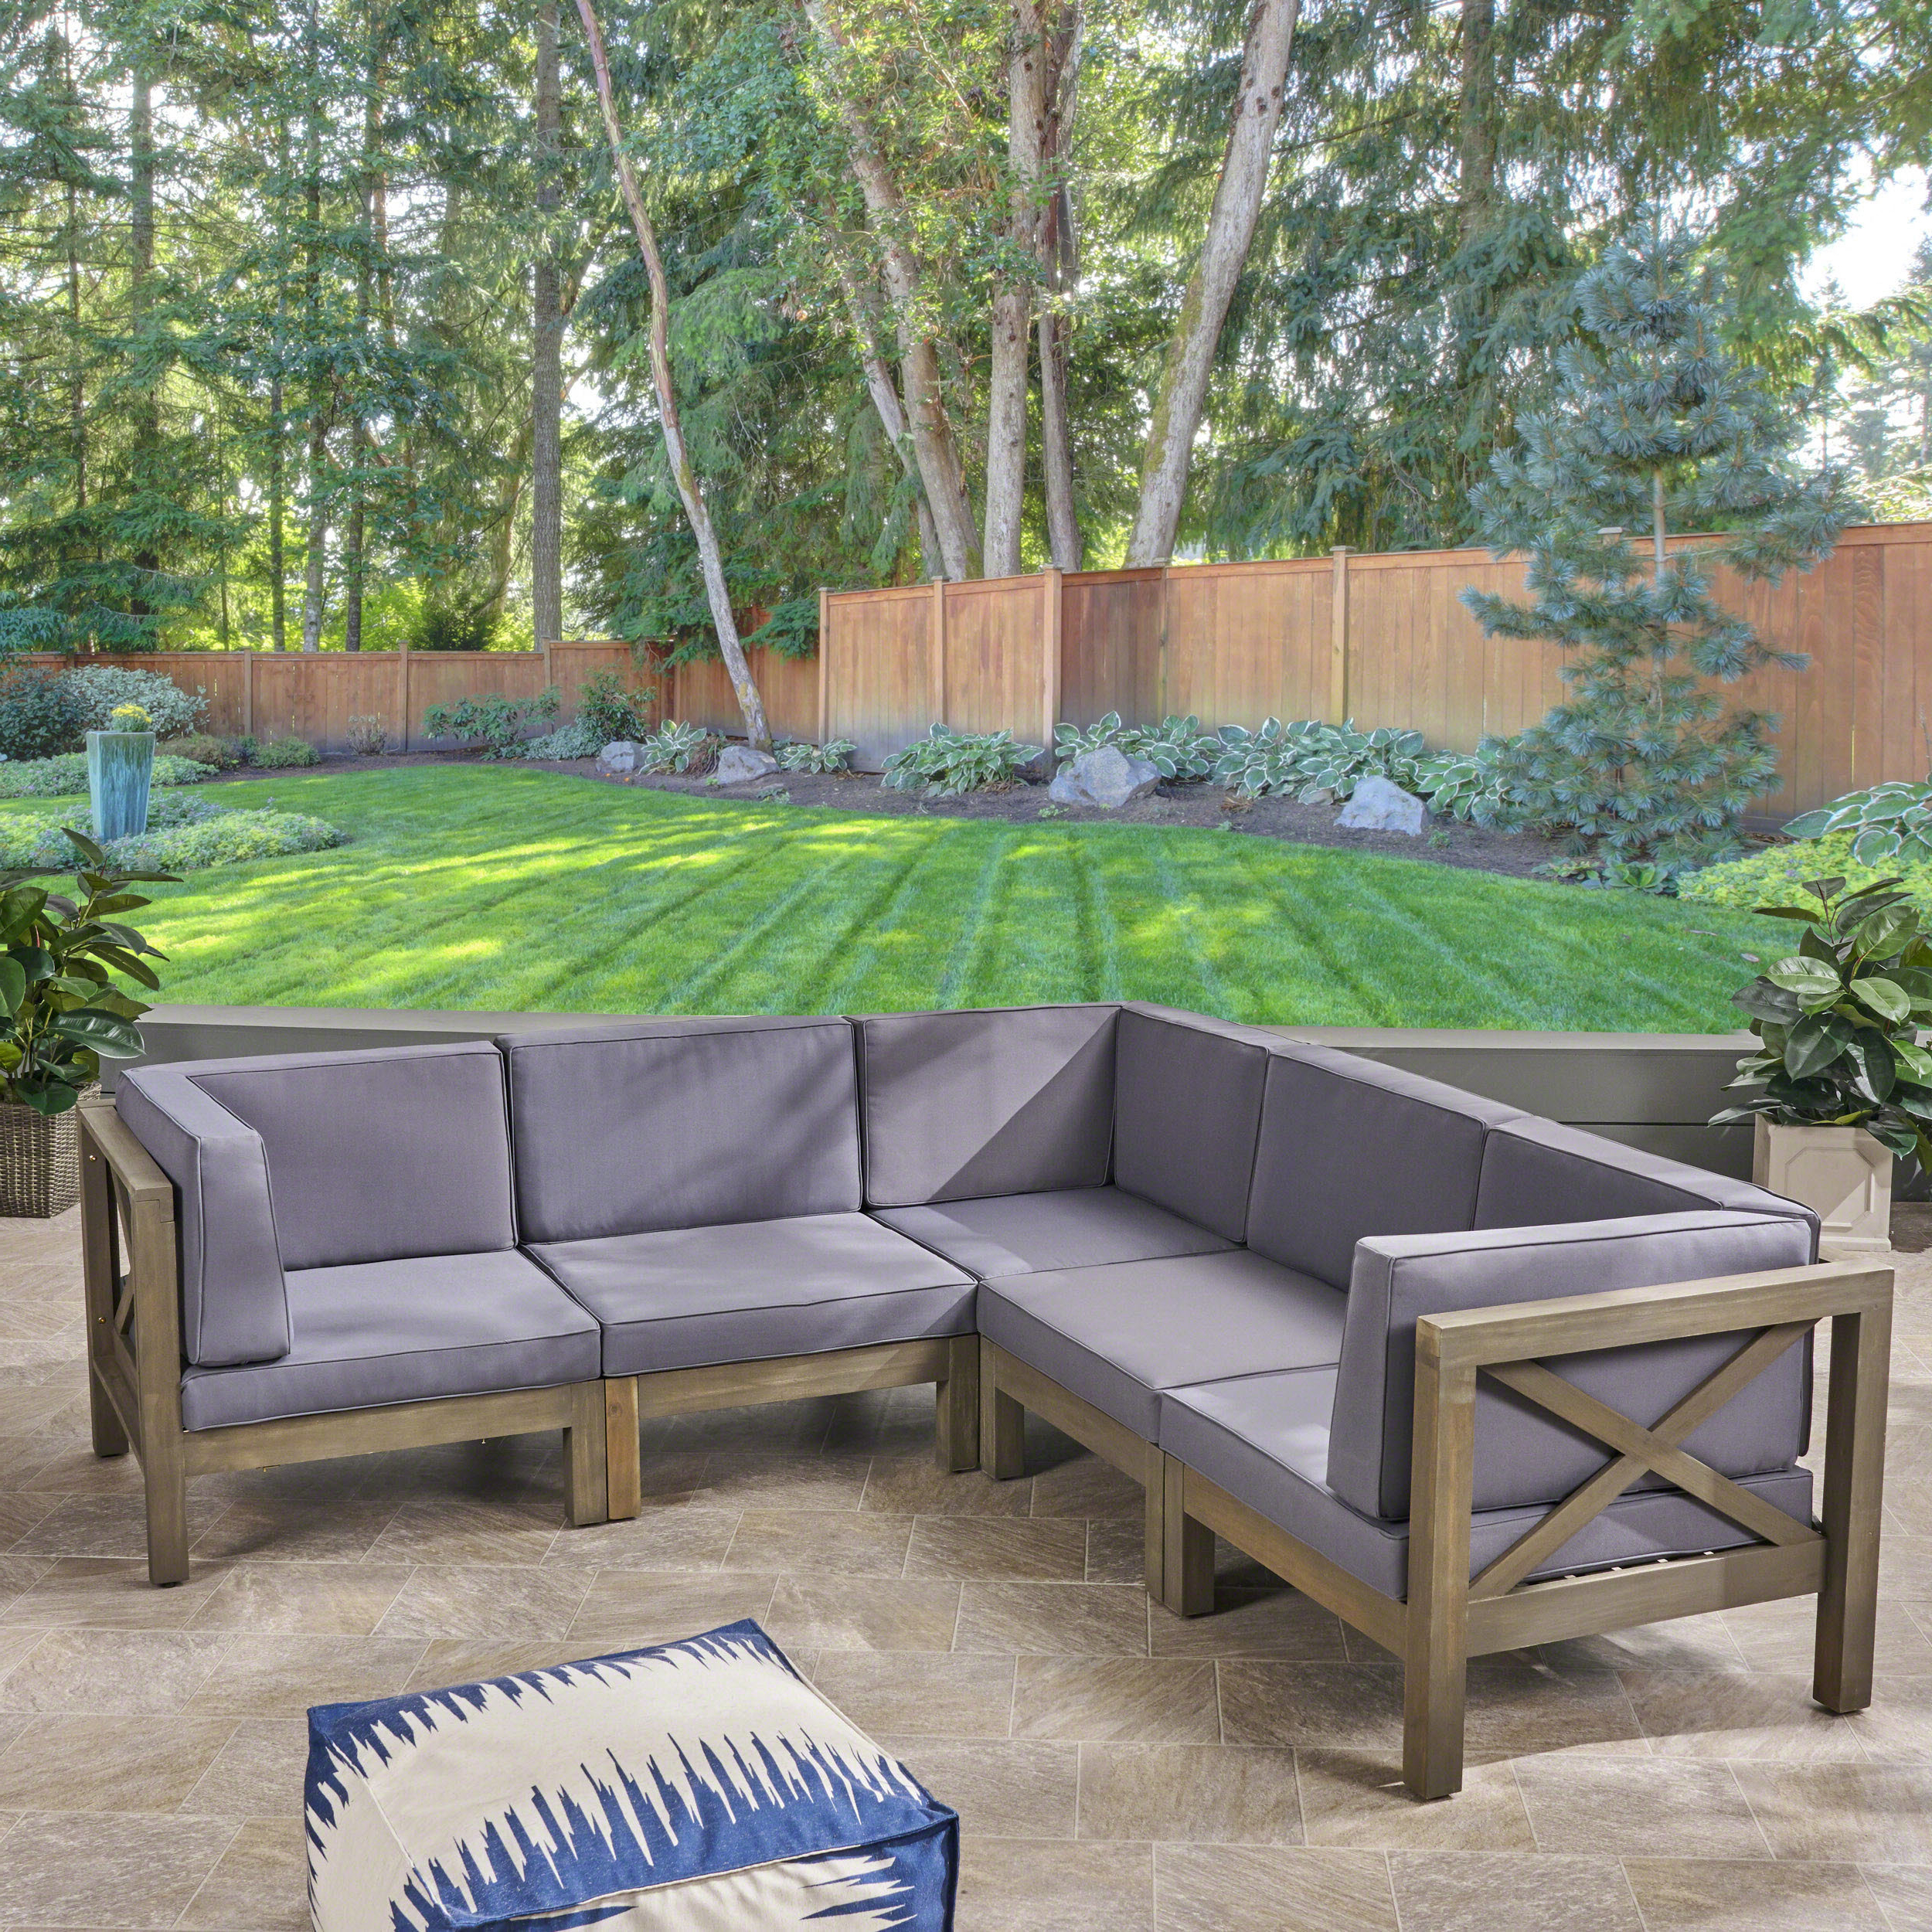 Oreland Patio Sofas With Cushions In Popular Ellison Patio Sectional With Cushions (View 12 of 20)